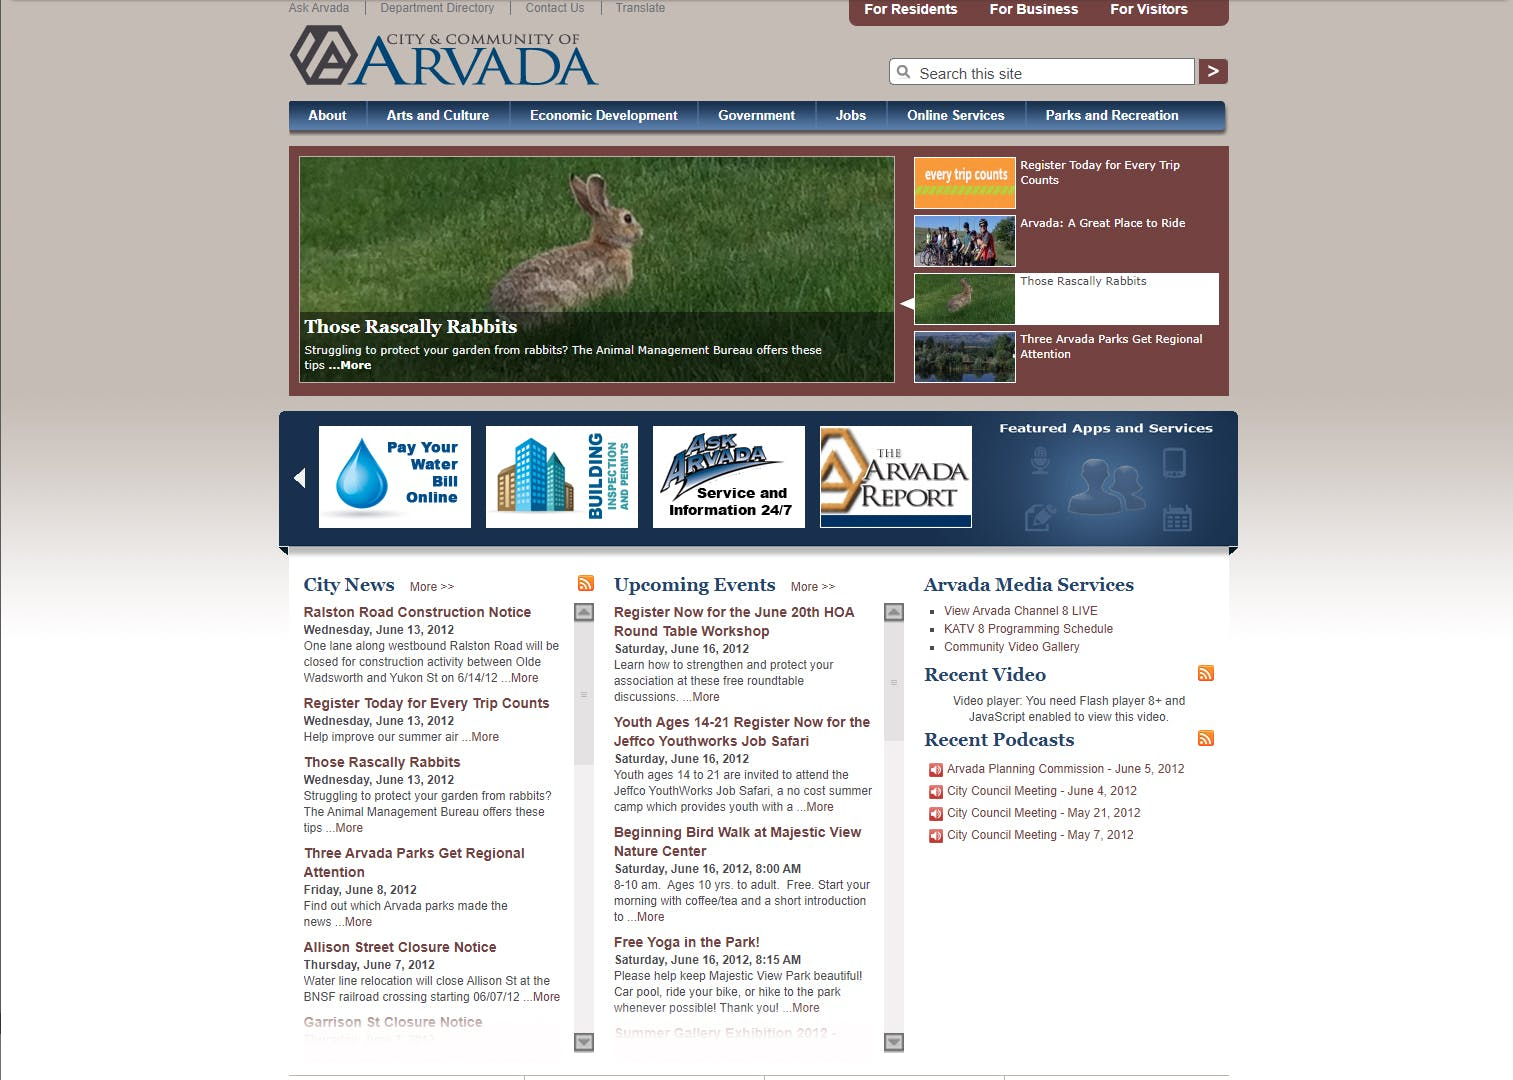 Arvada.org in 2012